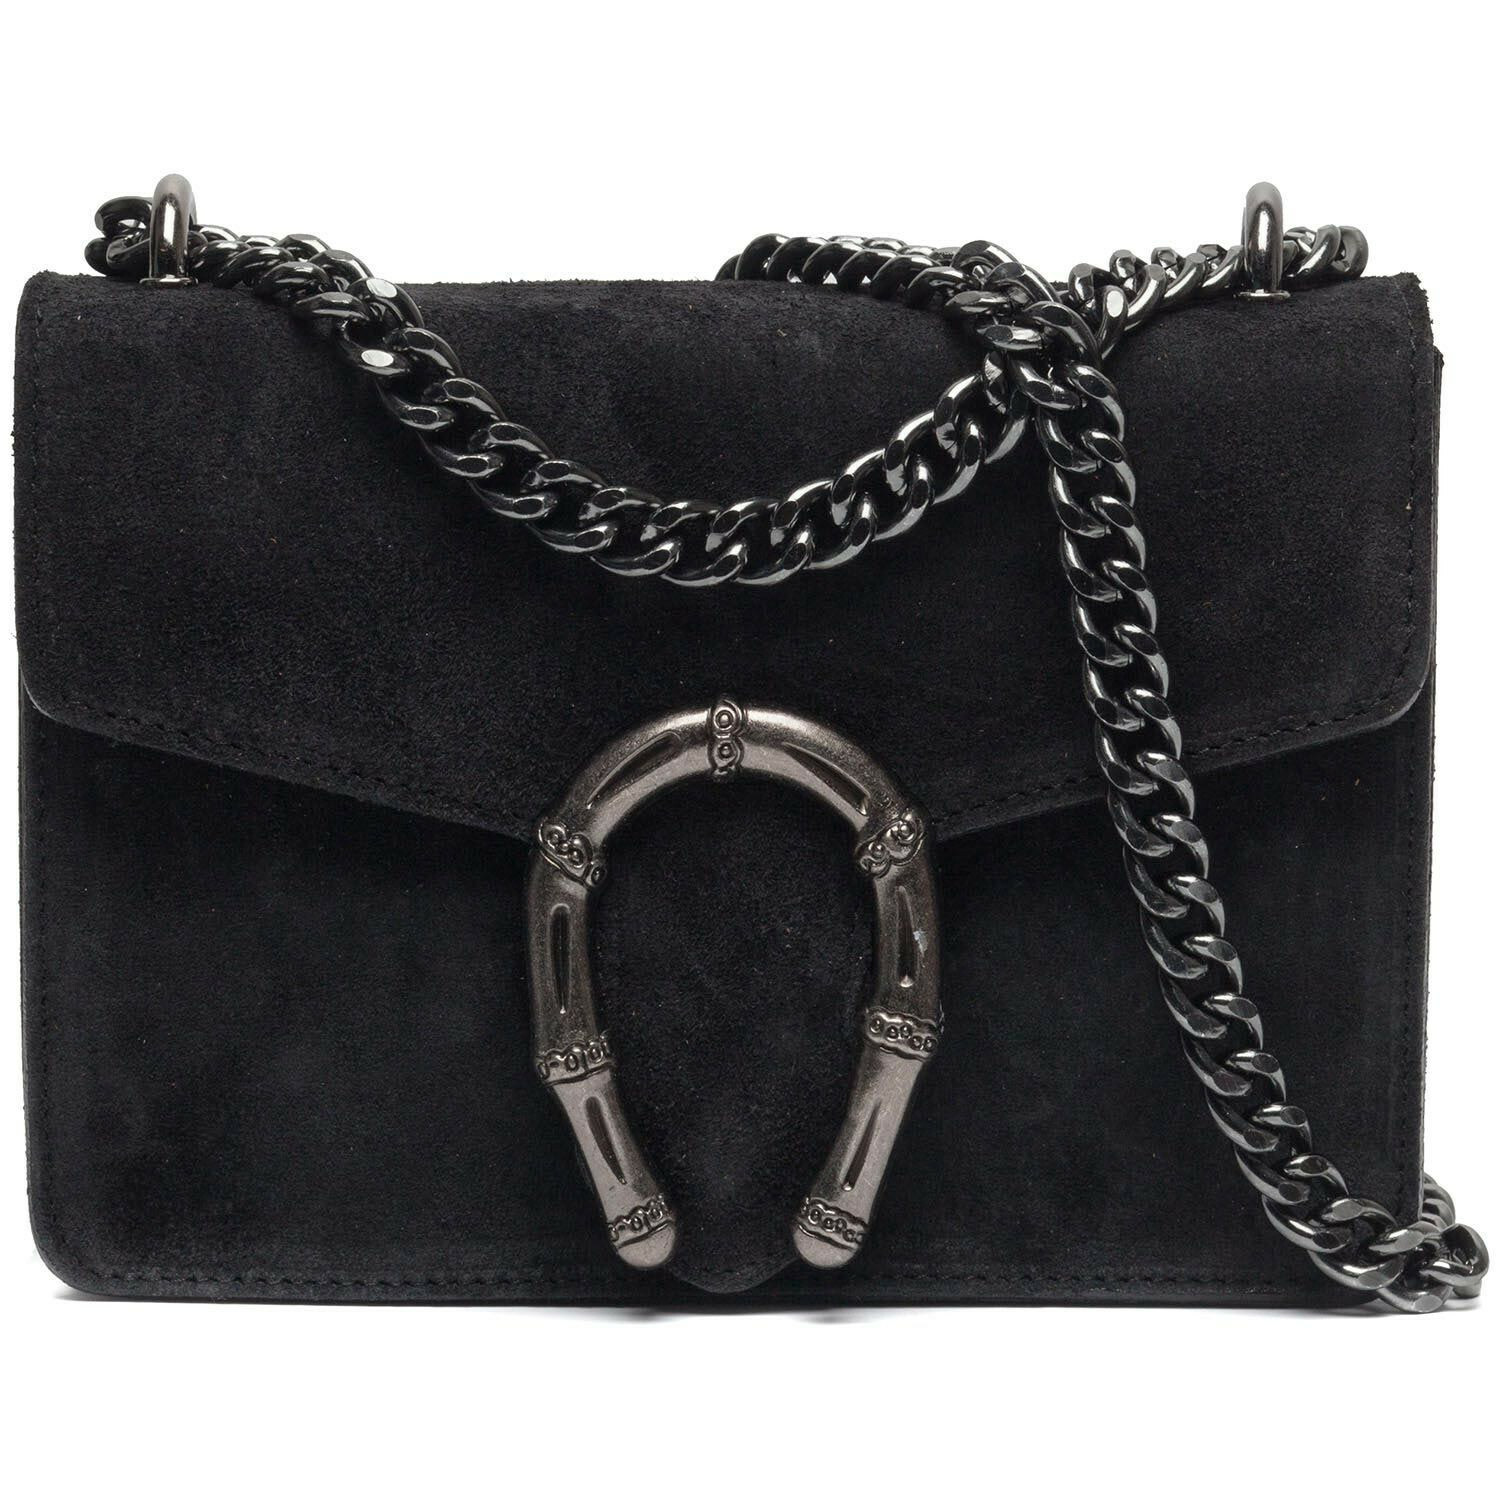 SMALL BLACK STATEMENT BAG